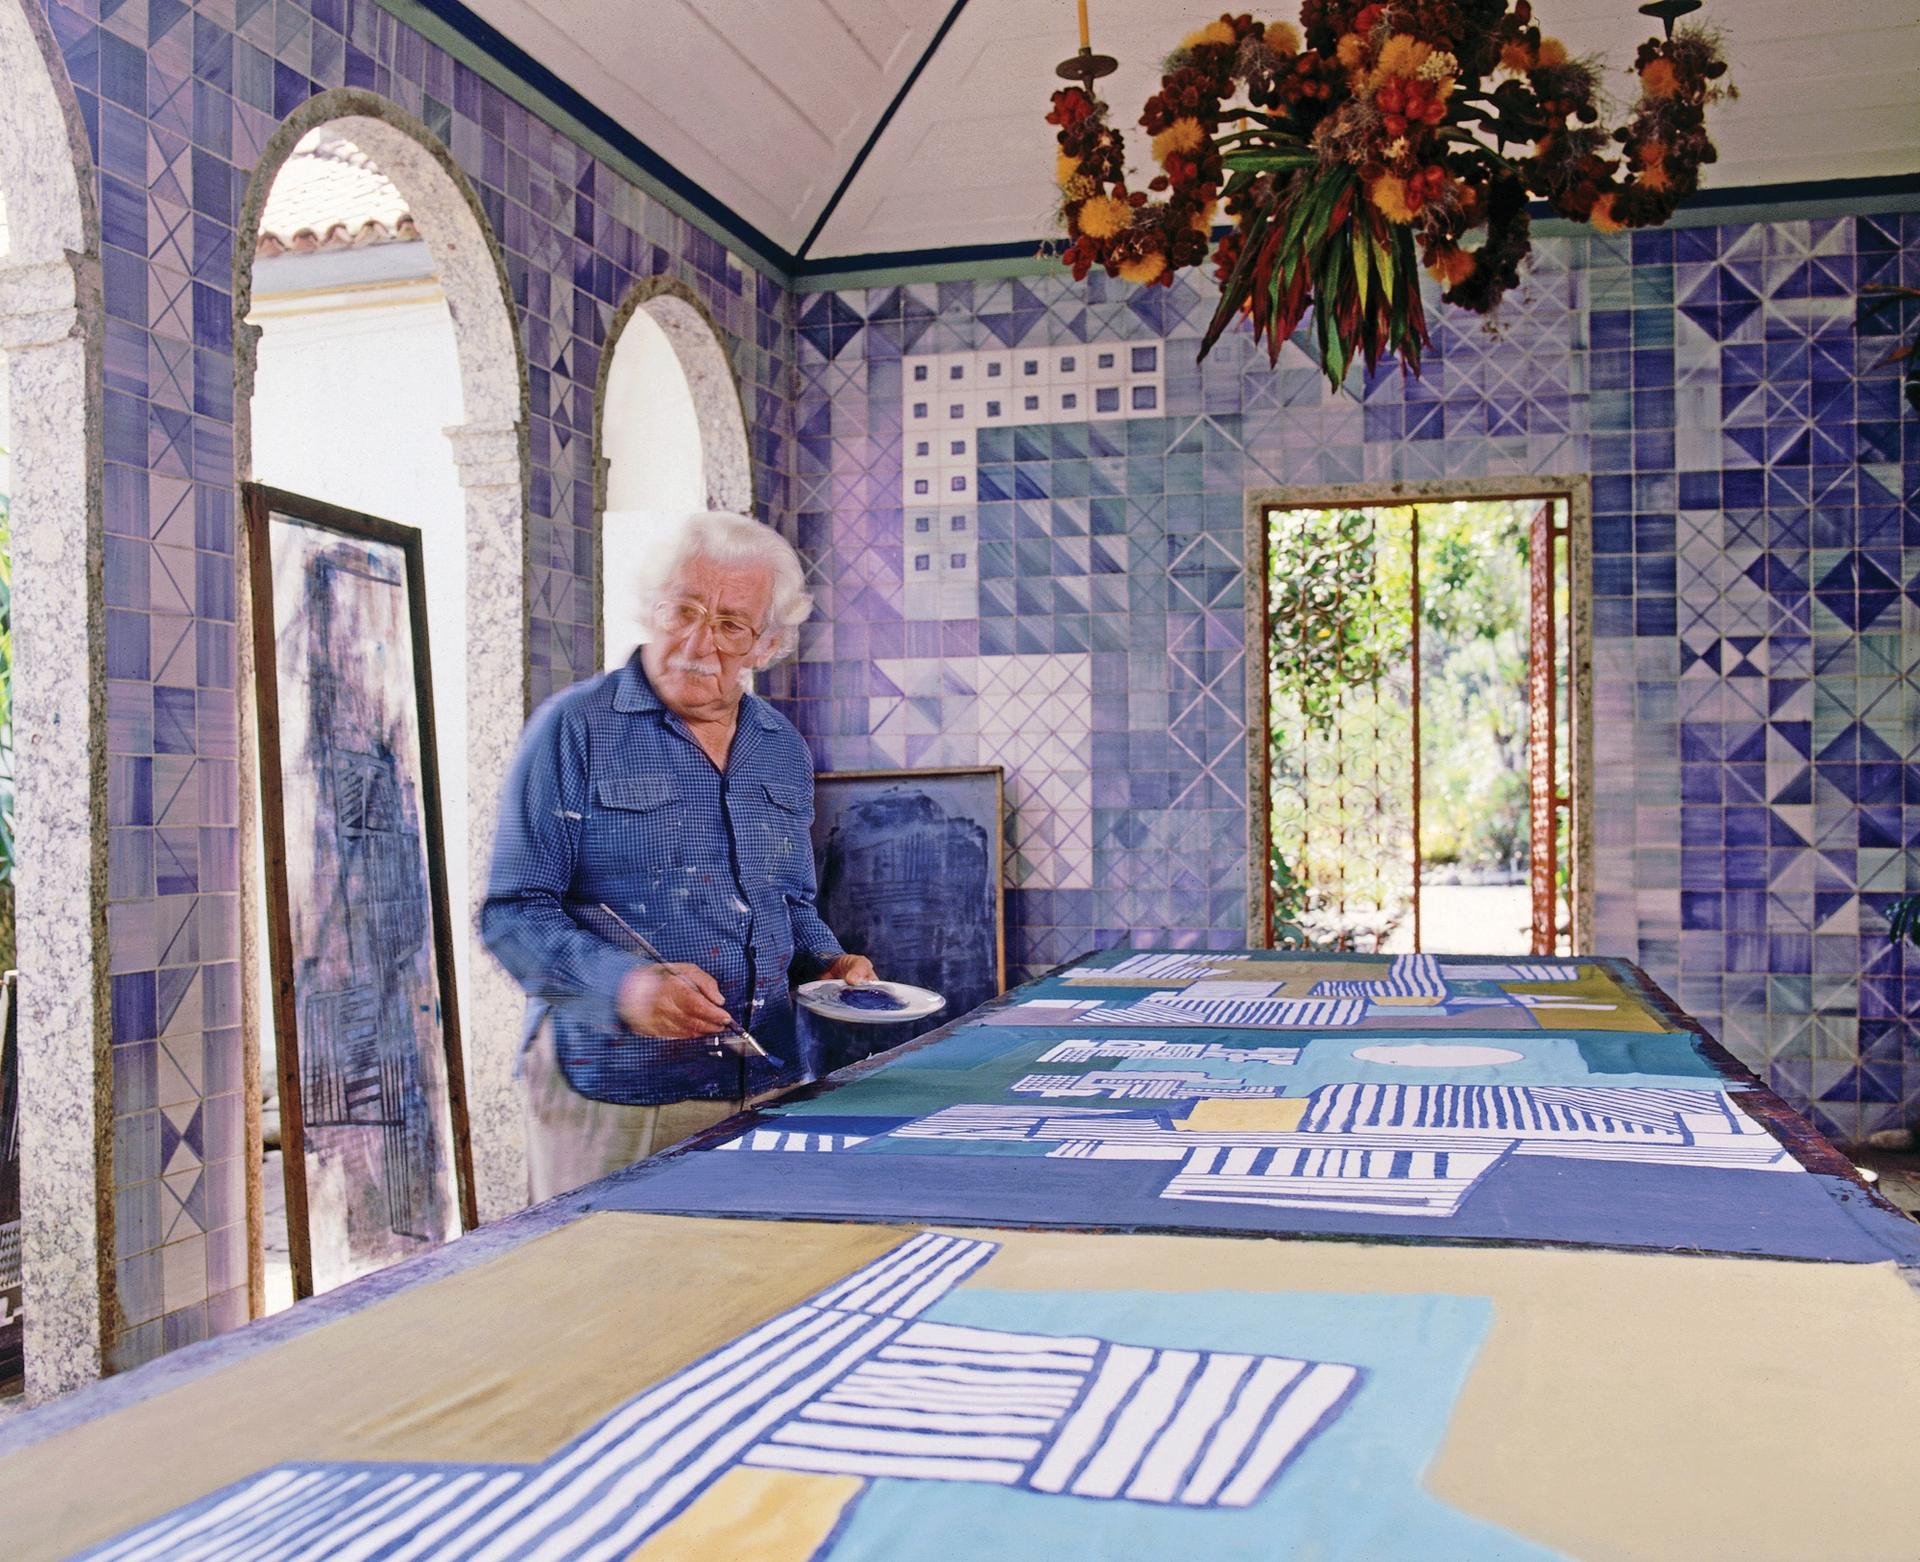 Roberto Burle Marx, painting in the loggia of his home in the 1980s © Claus Meyer/Tyba, courtesy of the New York Botanical Garden